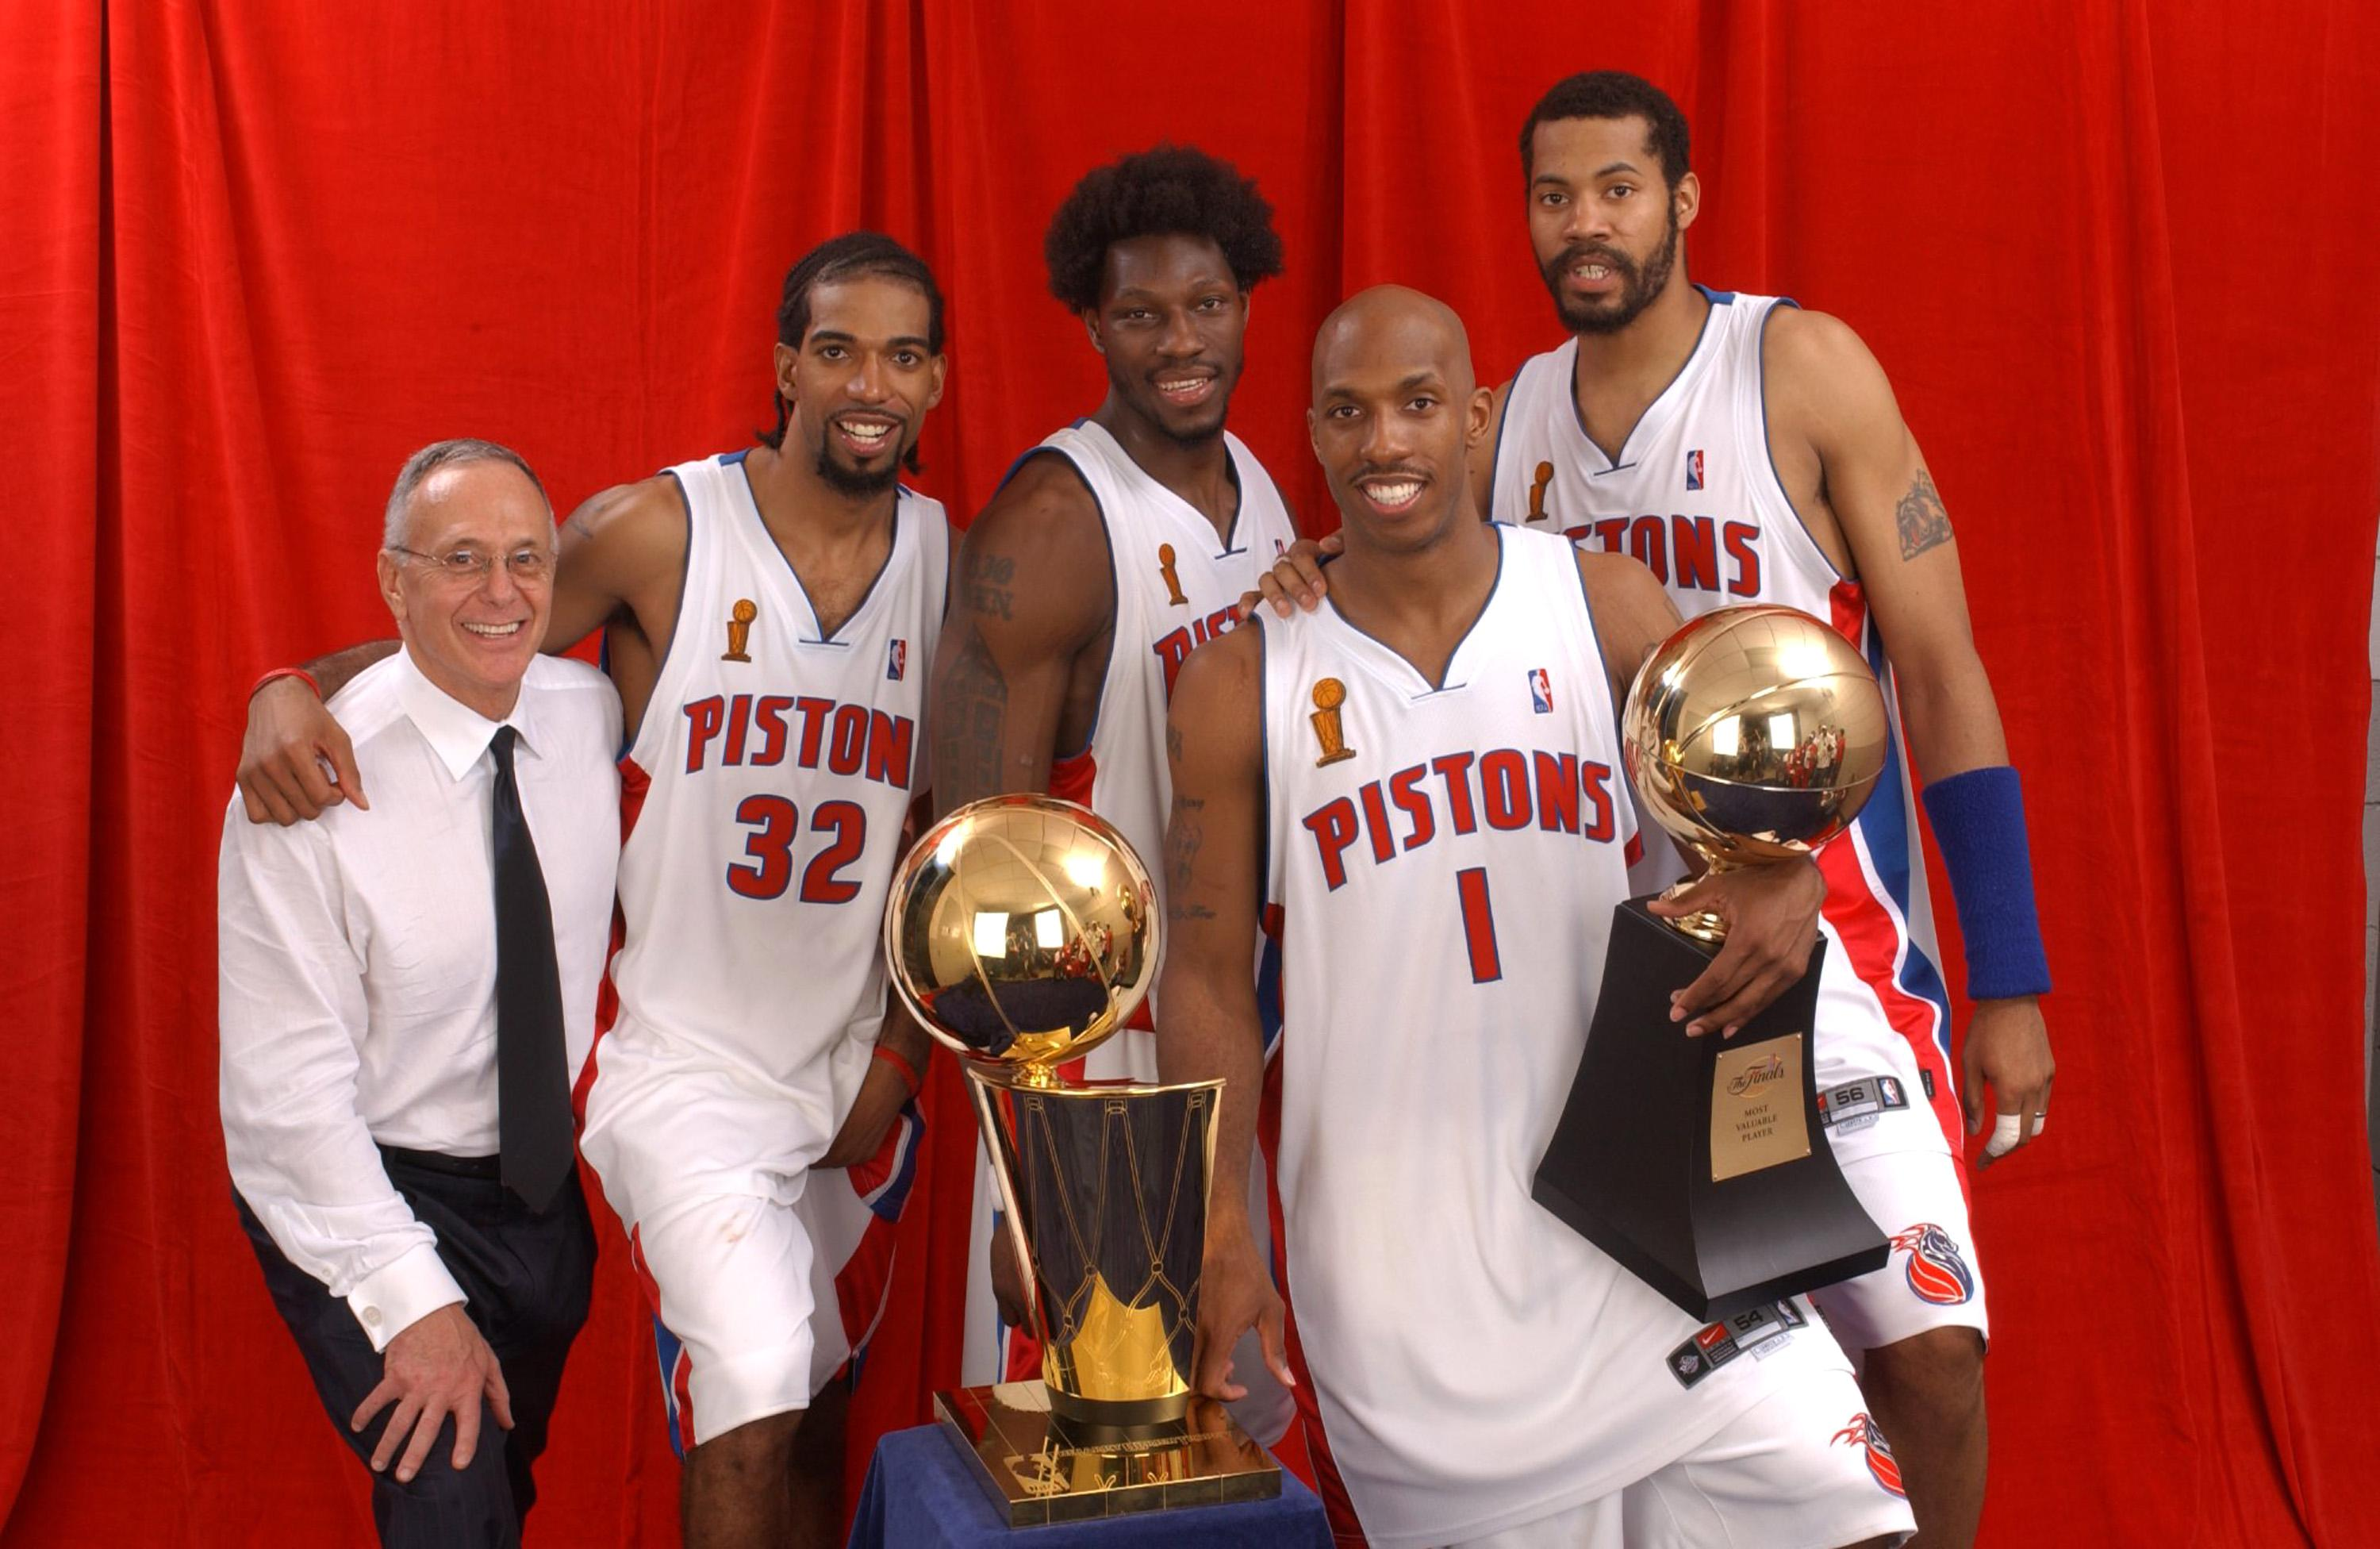 Hamilton, second left, and Billups, second right, won the 2004 NBA Championship with the Detroit Pistons